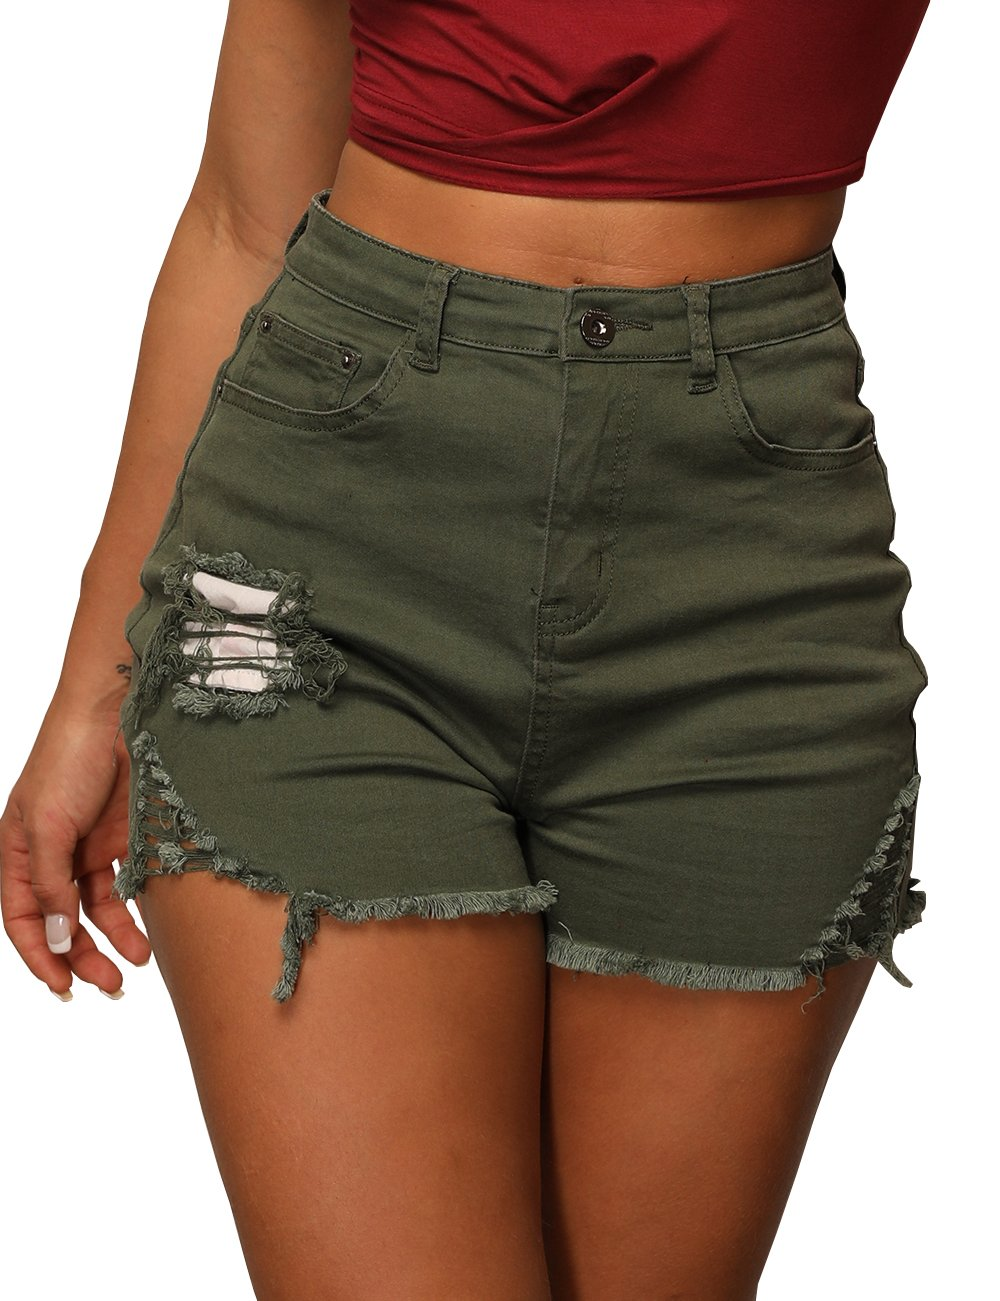 Women's Summer Shorts Girls Casual High Waist Ripped Hole Distressed Stretchy Shorts XL ArmyGreen